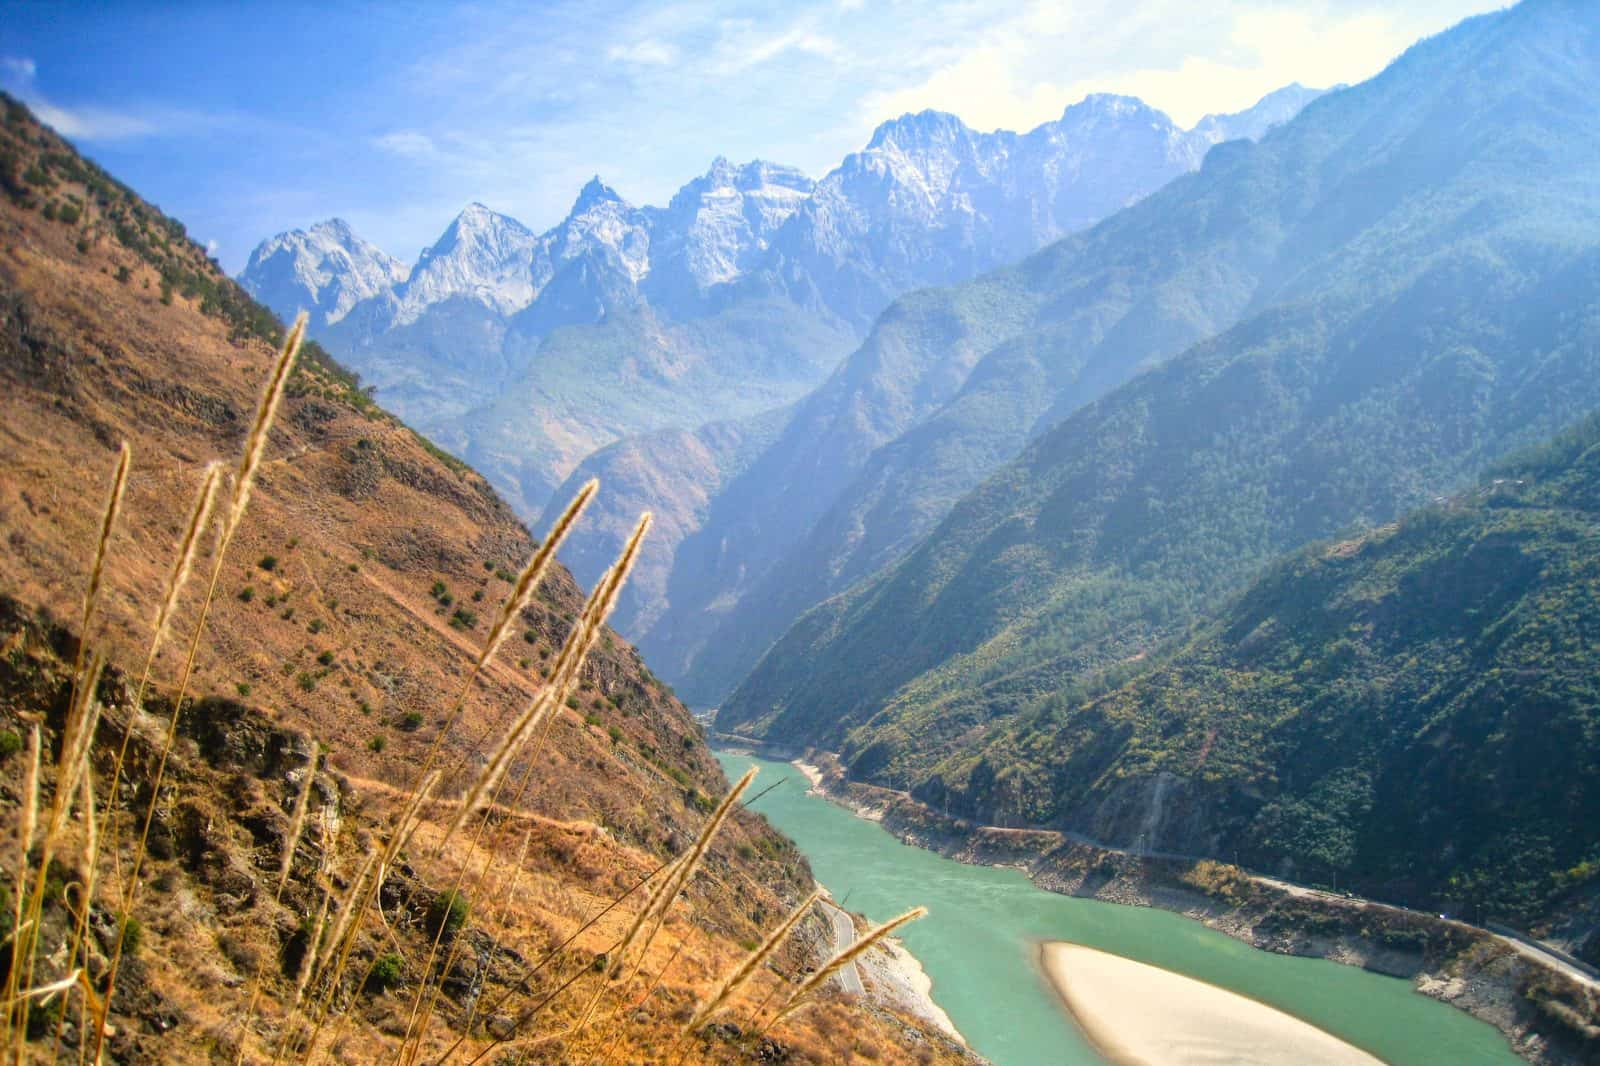 The mountains beyond Tiger Leaping Gorge